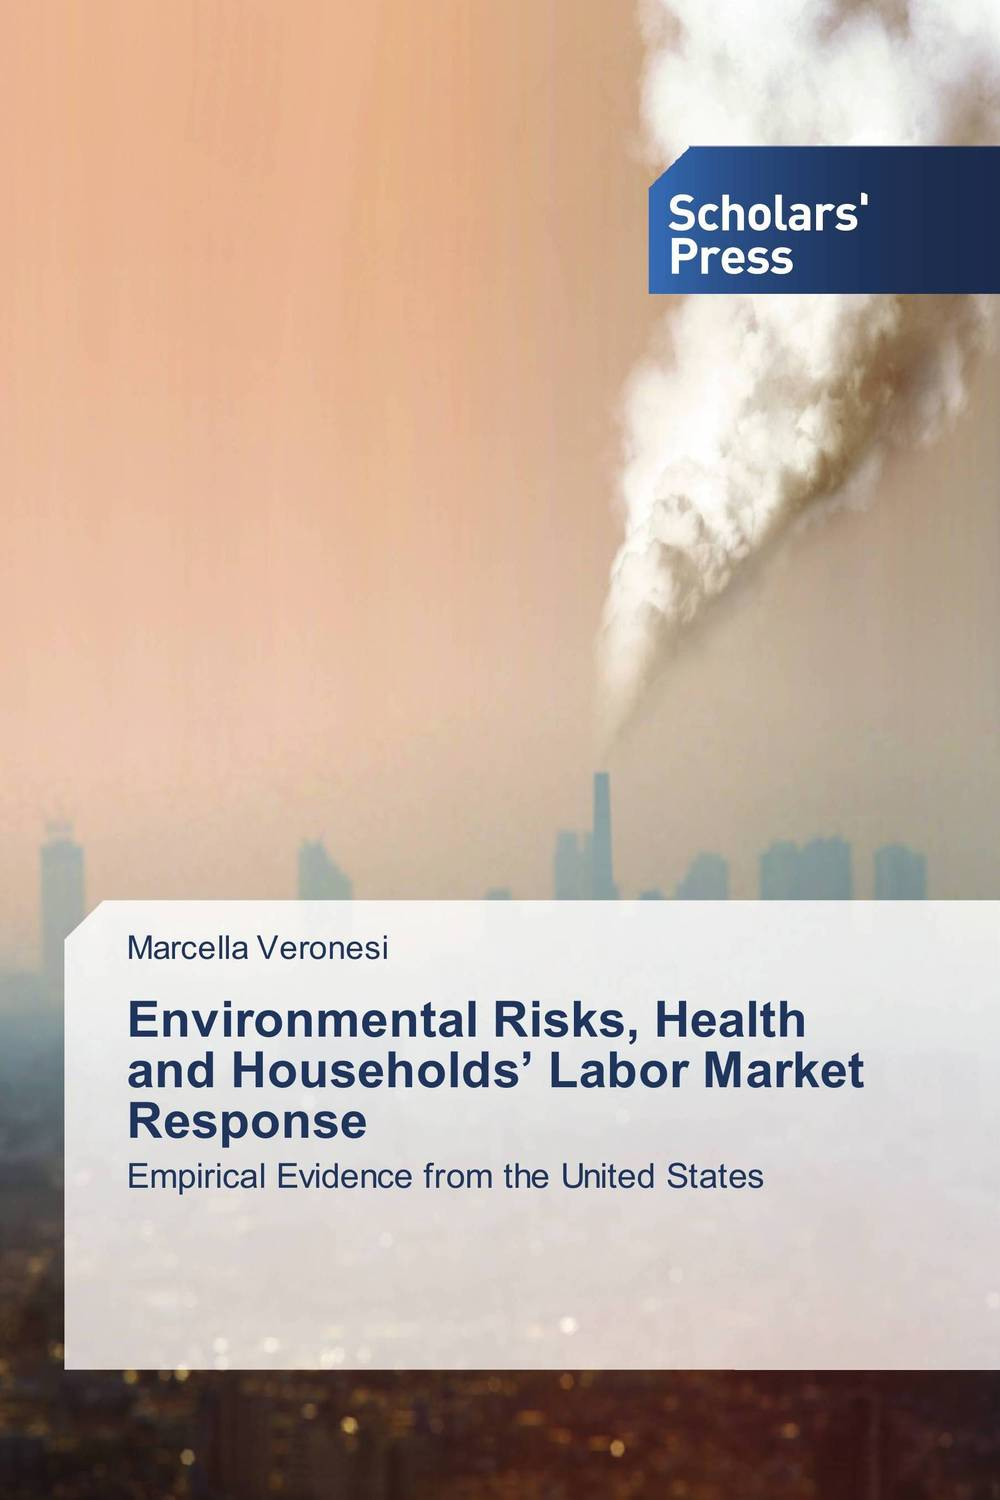 Environmental Risks, Health and Households' Labor Market Response